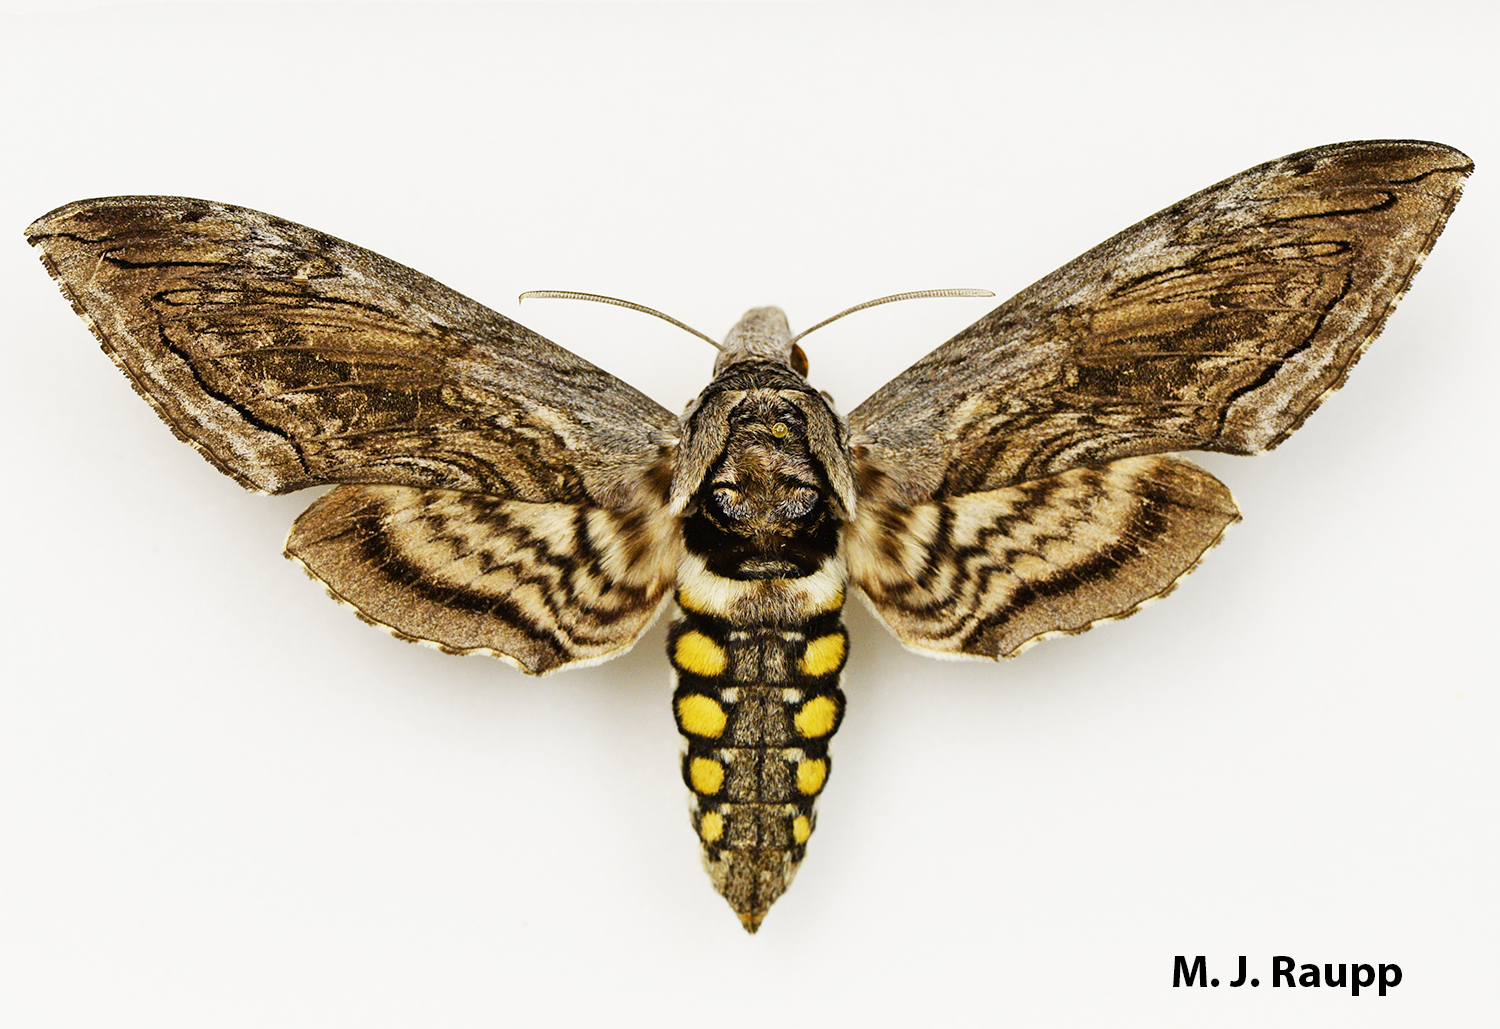 The gorgeous hawk moth pollinates plants at night and lays eggs on tomatoes that hatch into naughty hornworms.